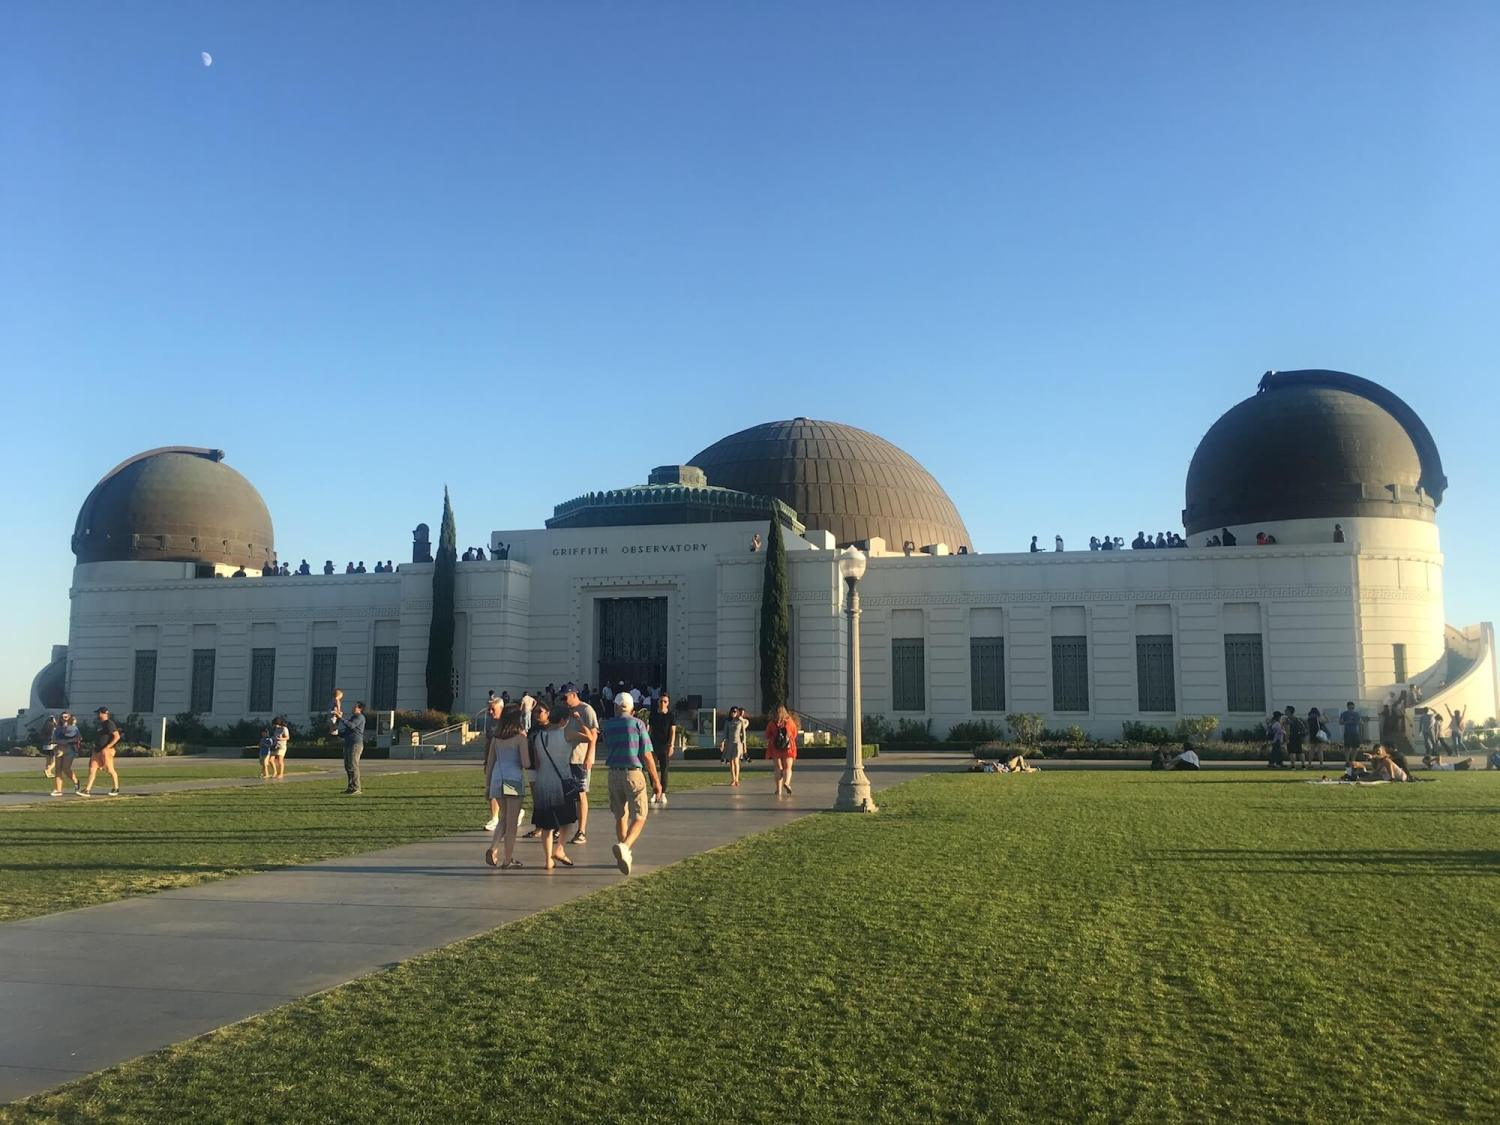 Griffith Observatory entrance, Griffith Park observatory